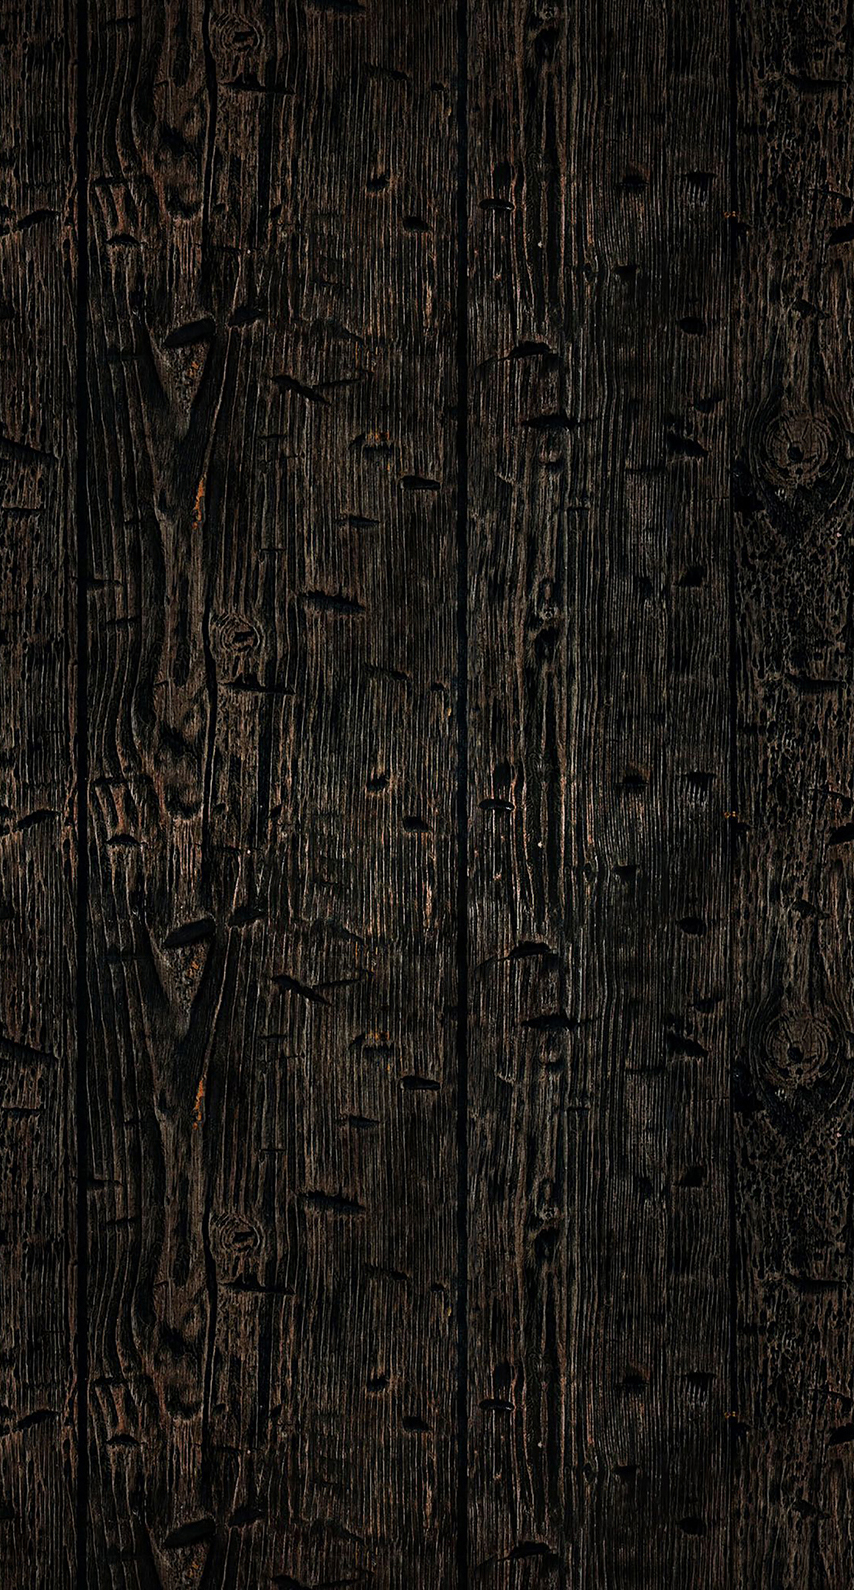 wood, abstract